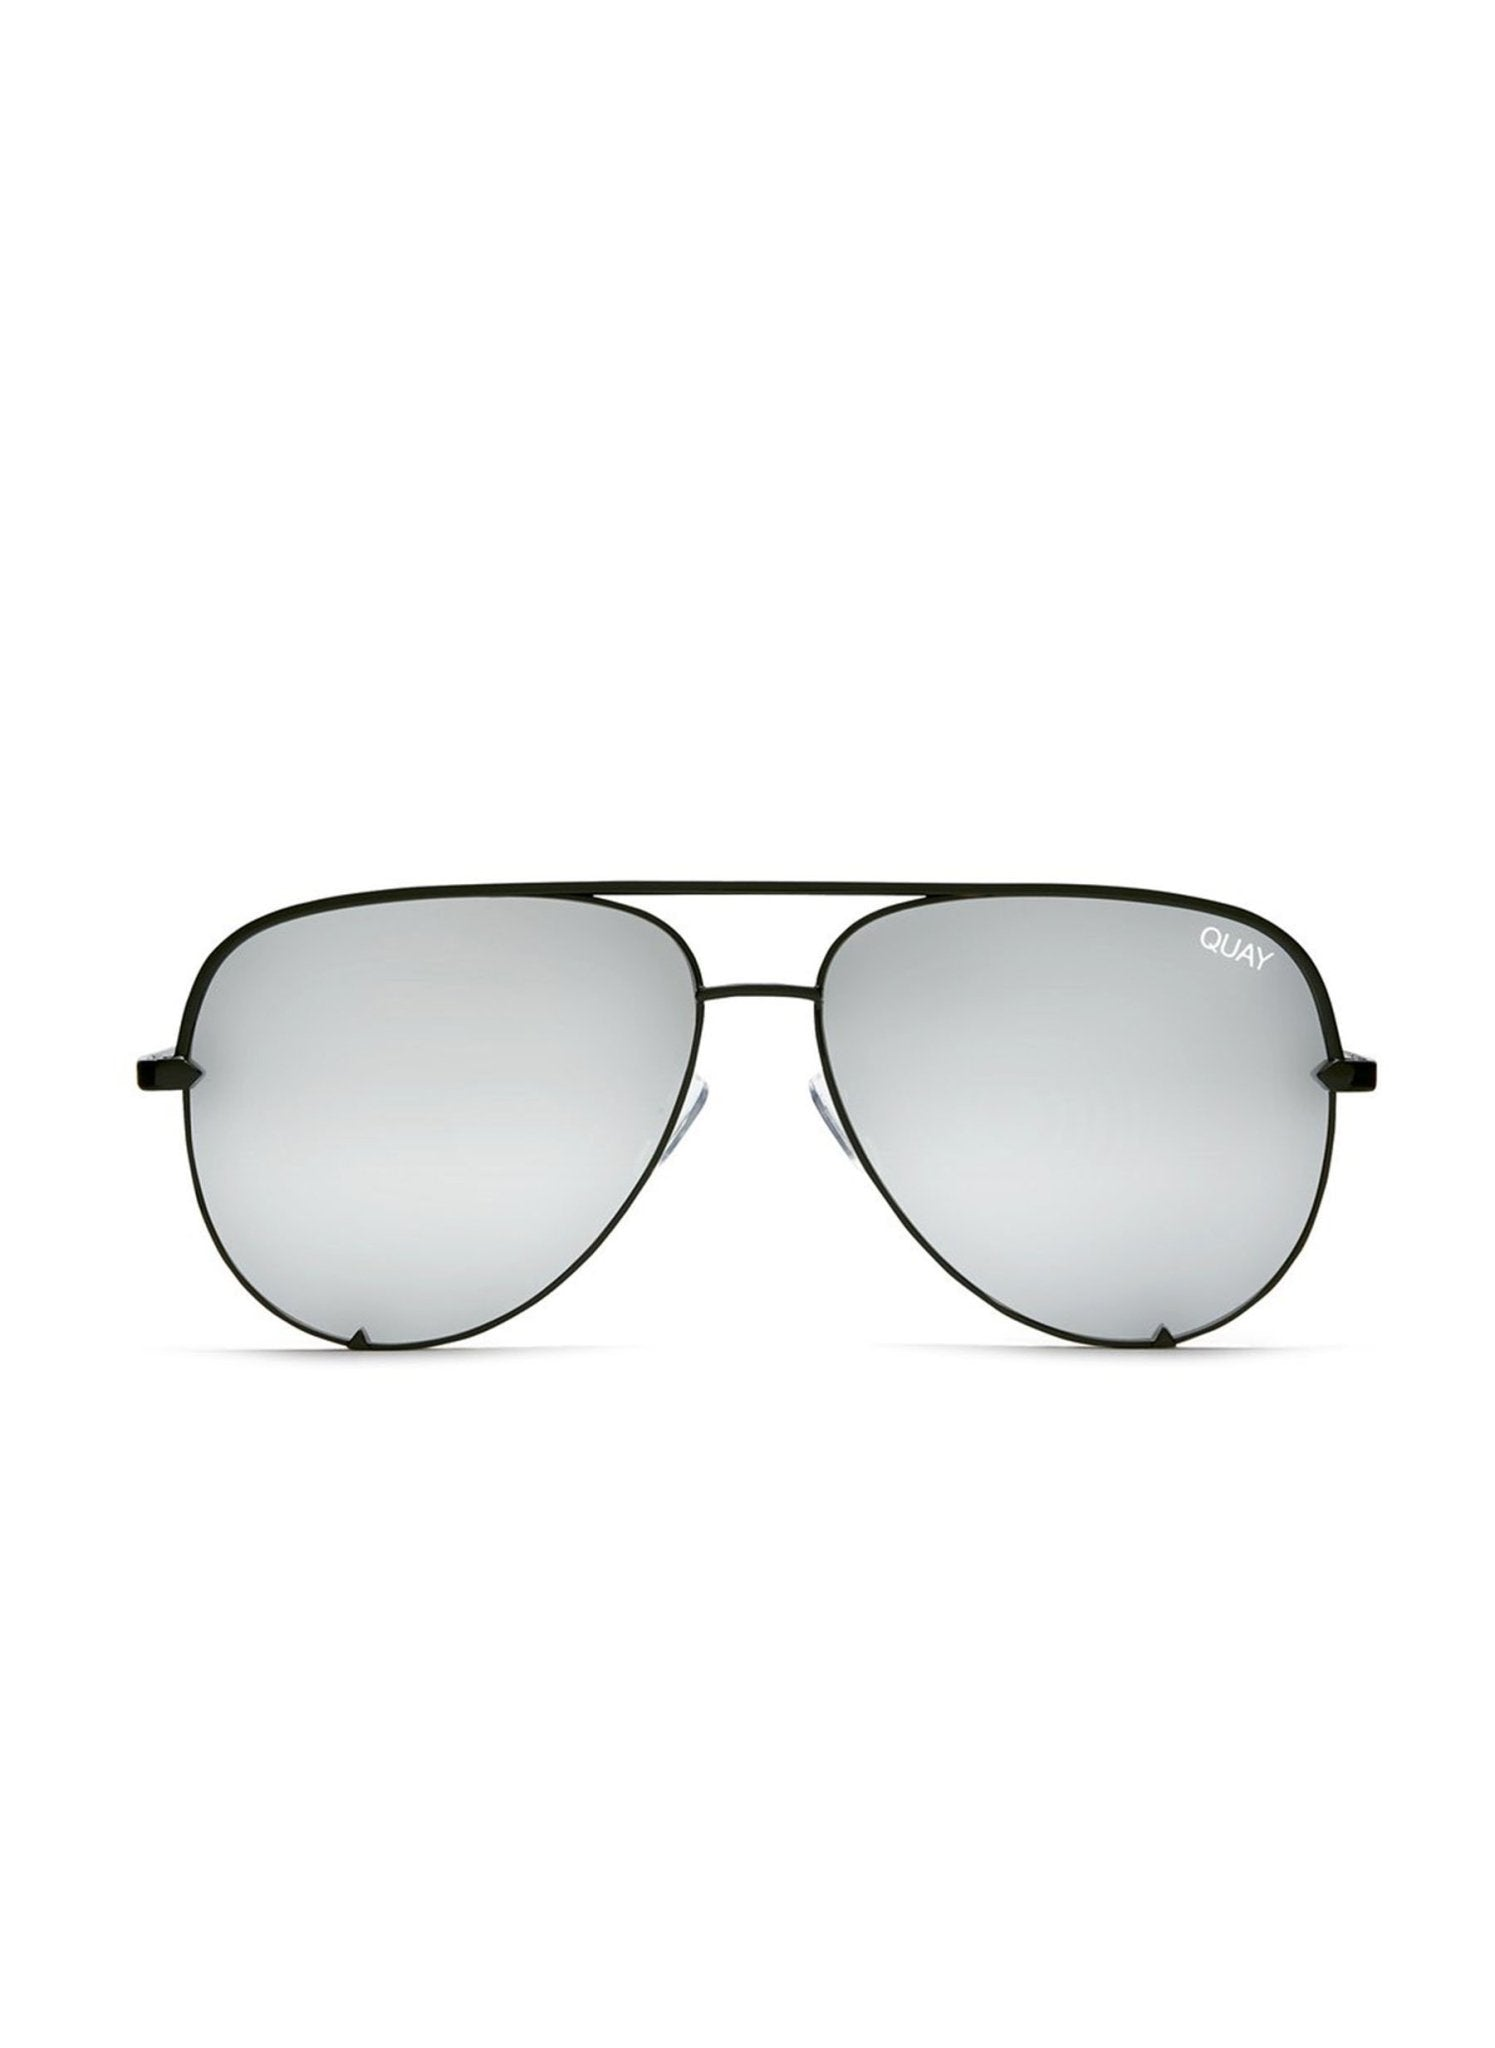 Quay High Key Sunglasses - Black/Silver - Salty Mermaid Swim